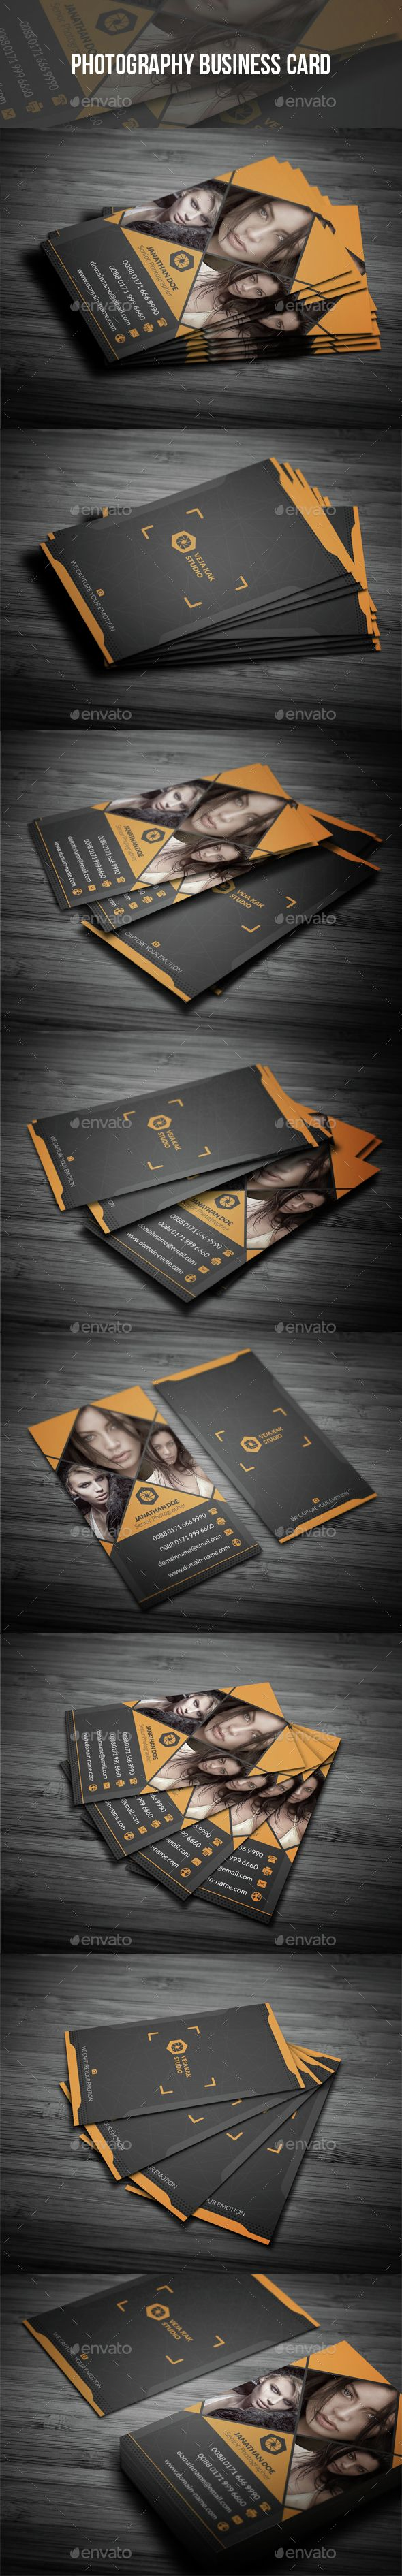 Photography Business Card | Photography business cards, Business ...